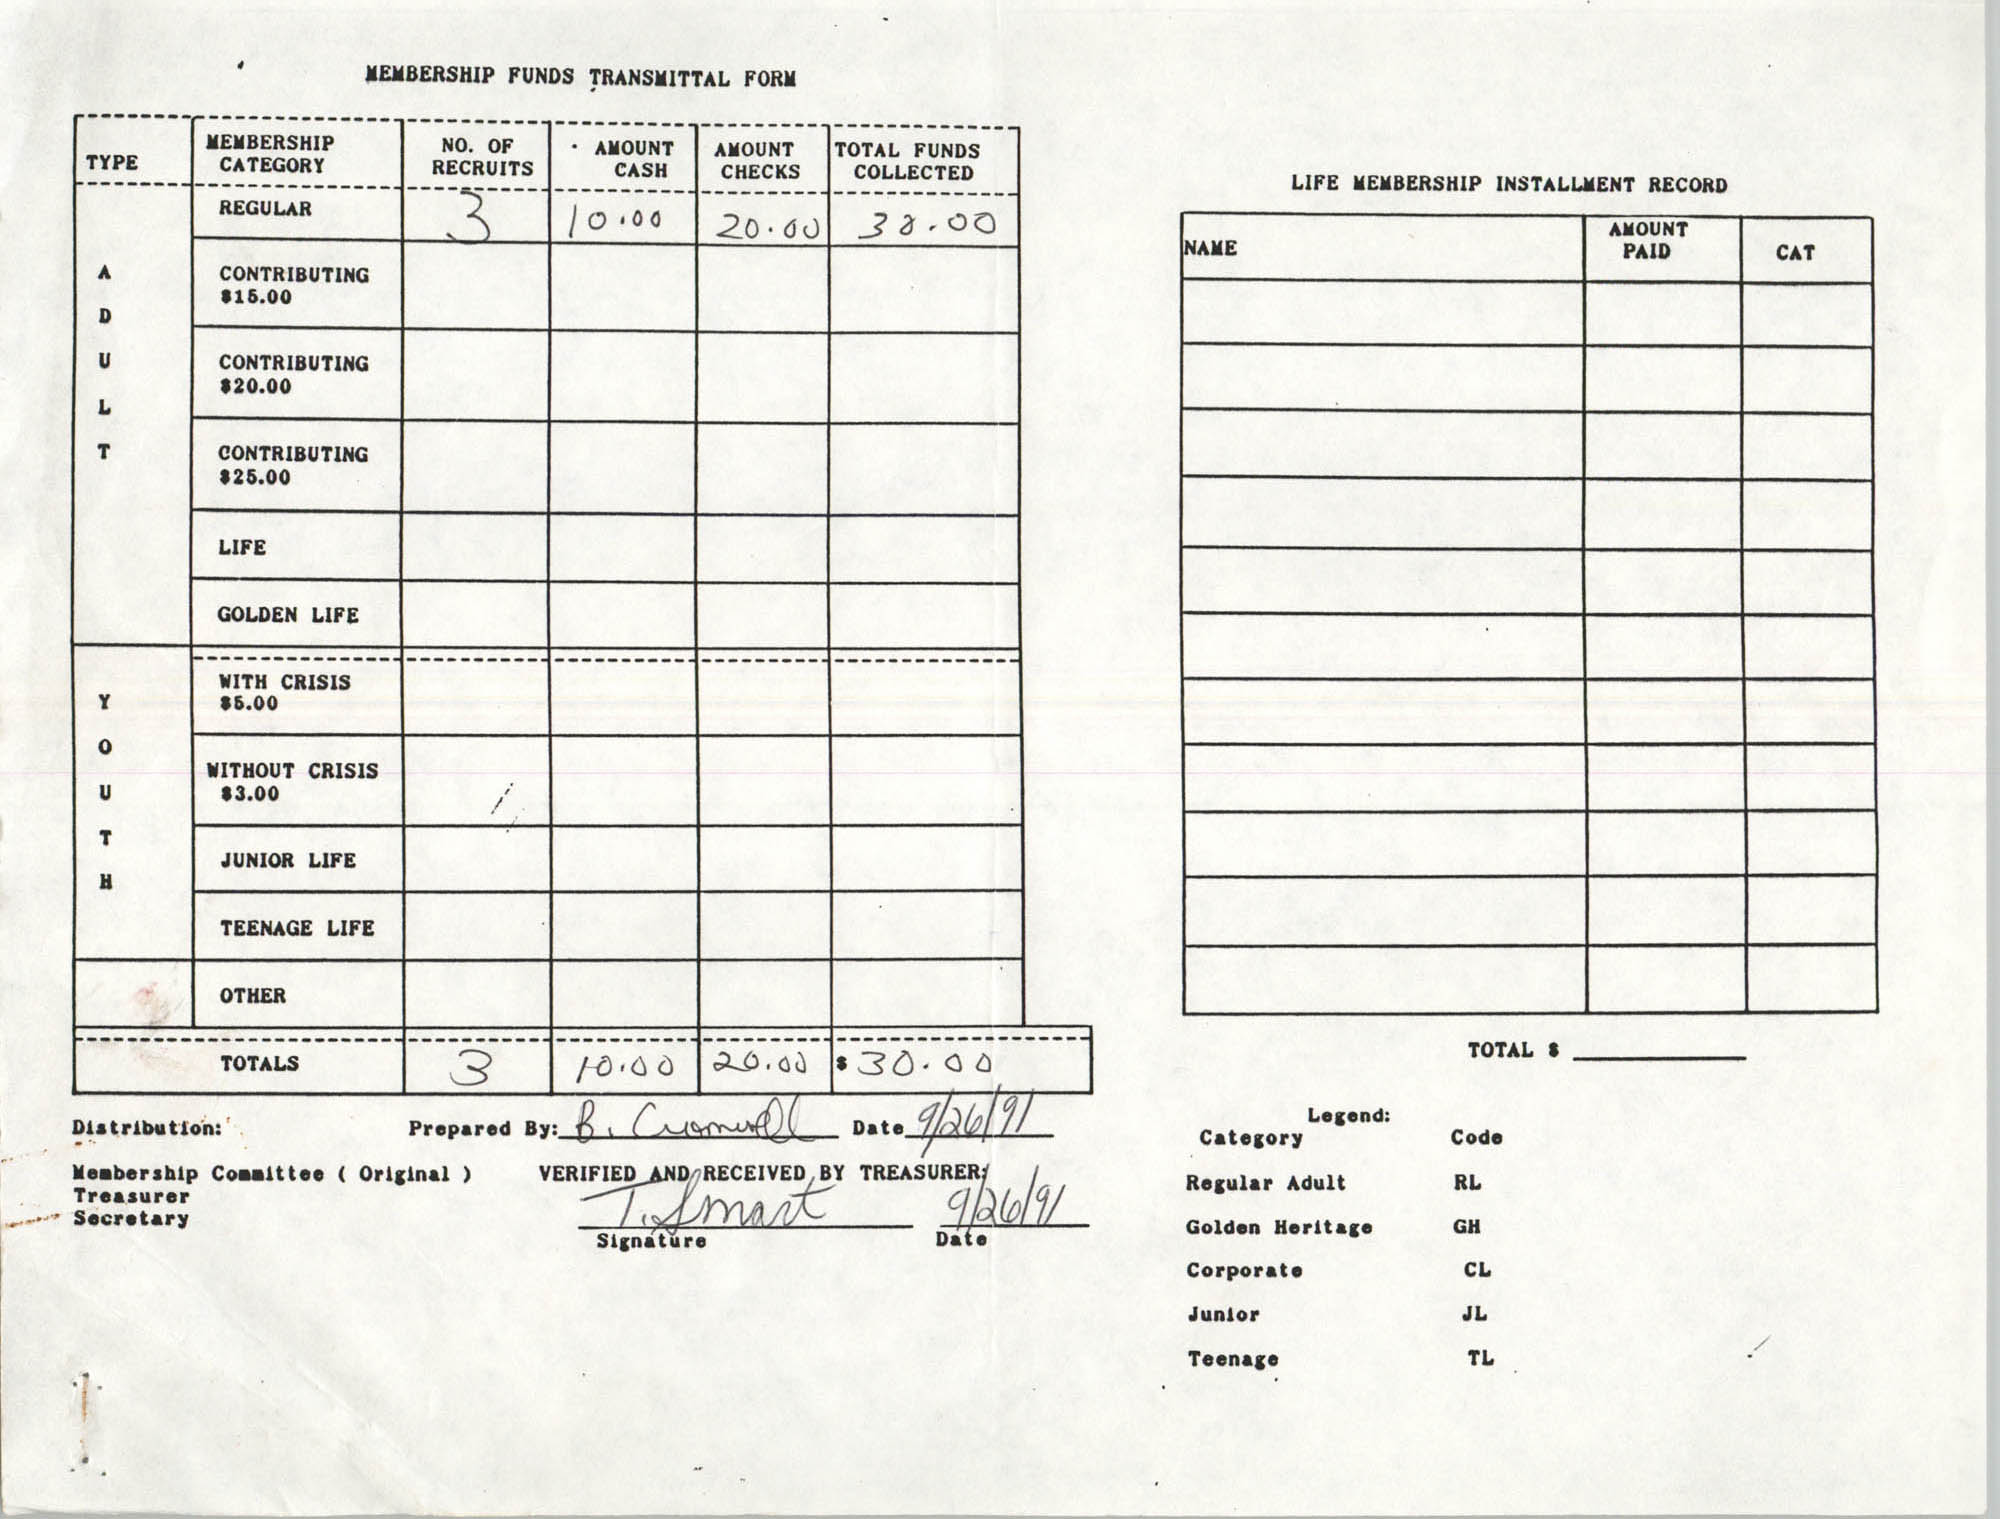 Charleston Branch of the NAACP Funds Transmittal Forms, September 1991, Page 38